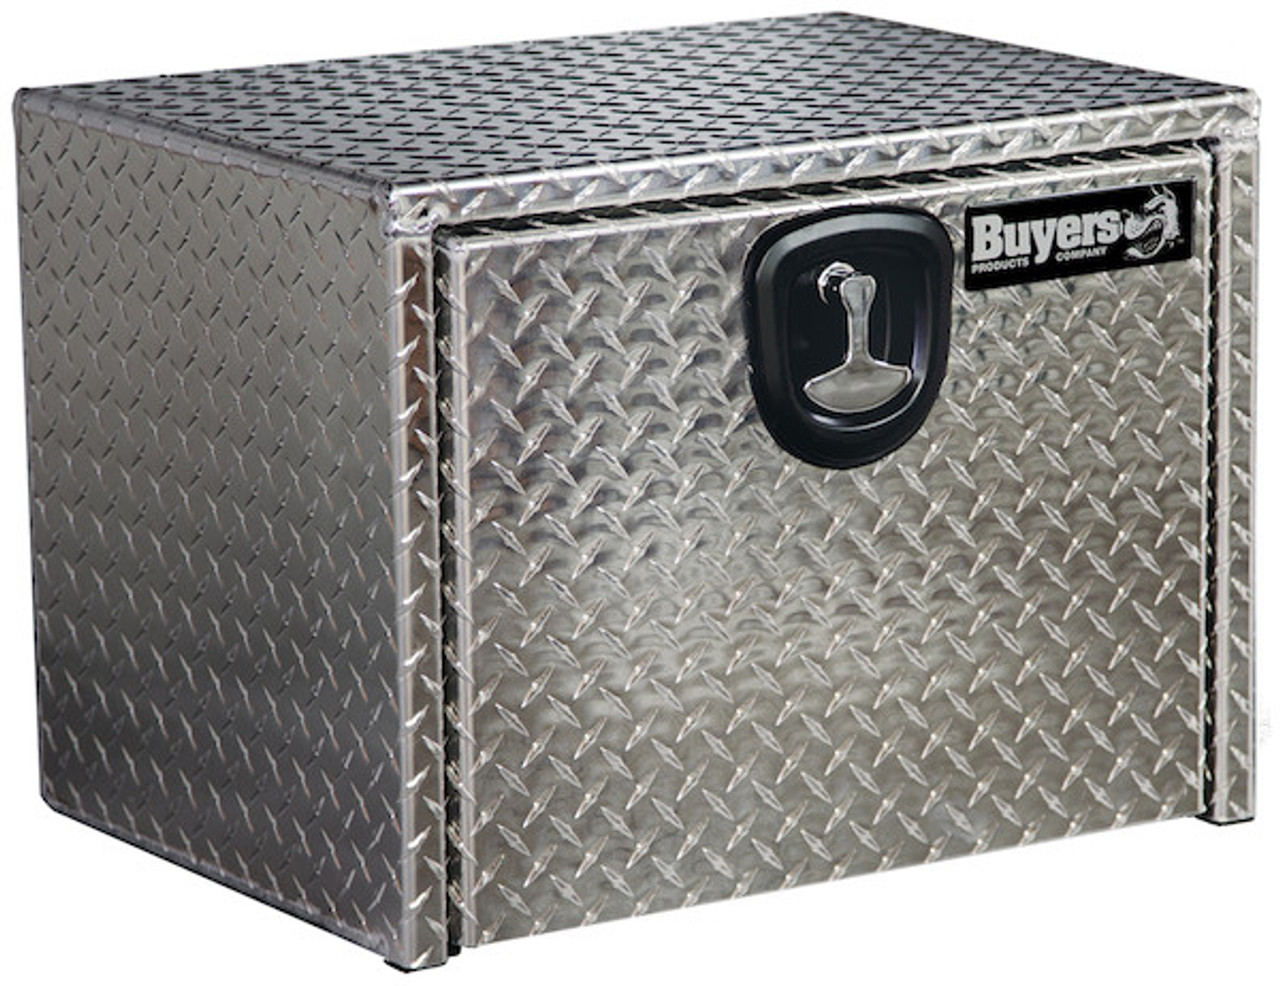 "1705160 BUYERS PRODUCTS DIAMOND TREAD ALUMINUM UNDERBODY TRUCK TOOLBOX 14""HX16""DX24""W"